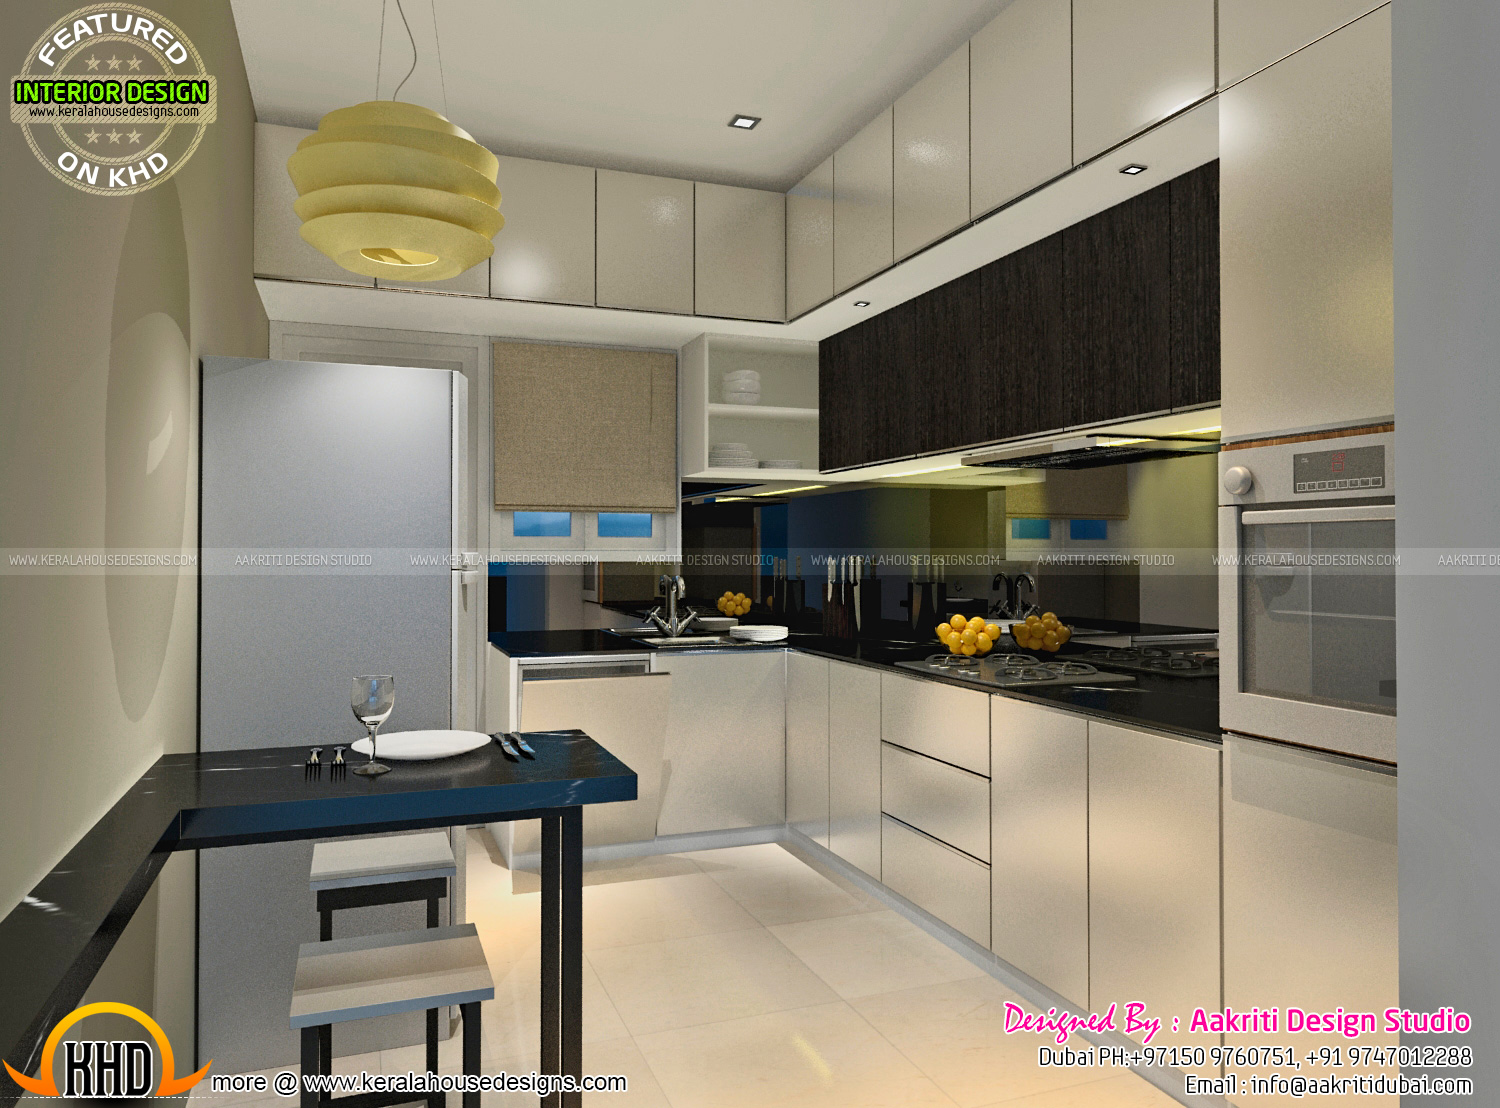 Dining kitchen wash area interior kerala home design for Kitchen interior images